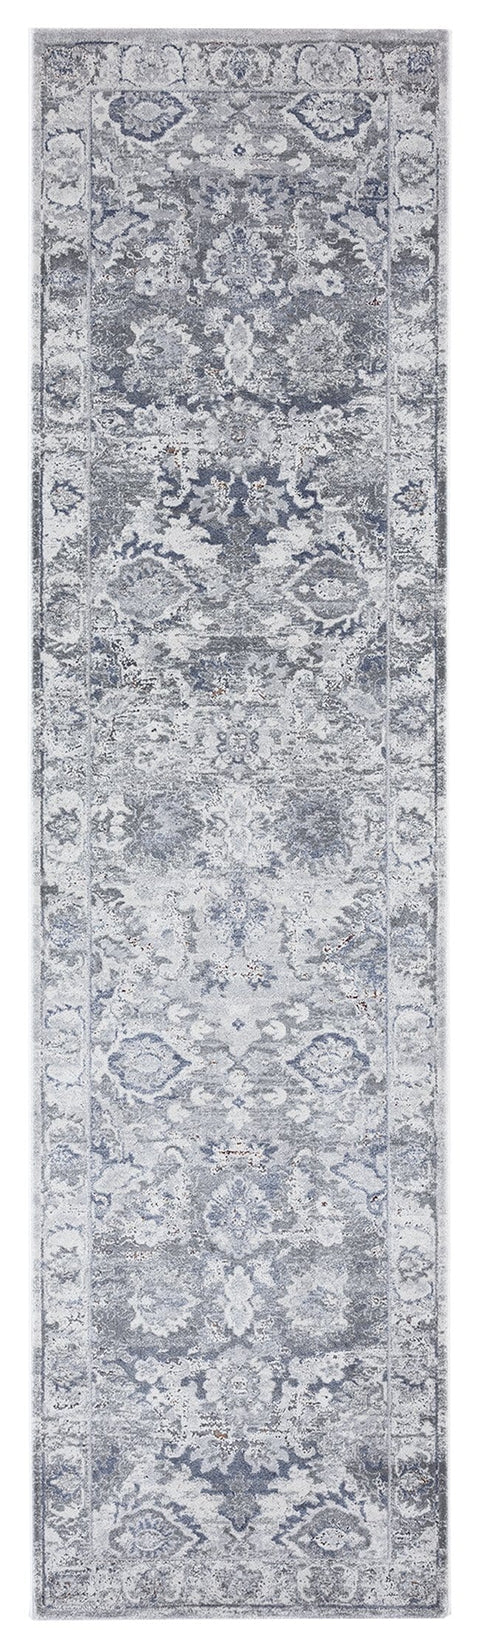 lorna-grey-blue-ivory-traditional-distressed-motif-runner-rug-missamara.jpg